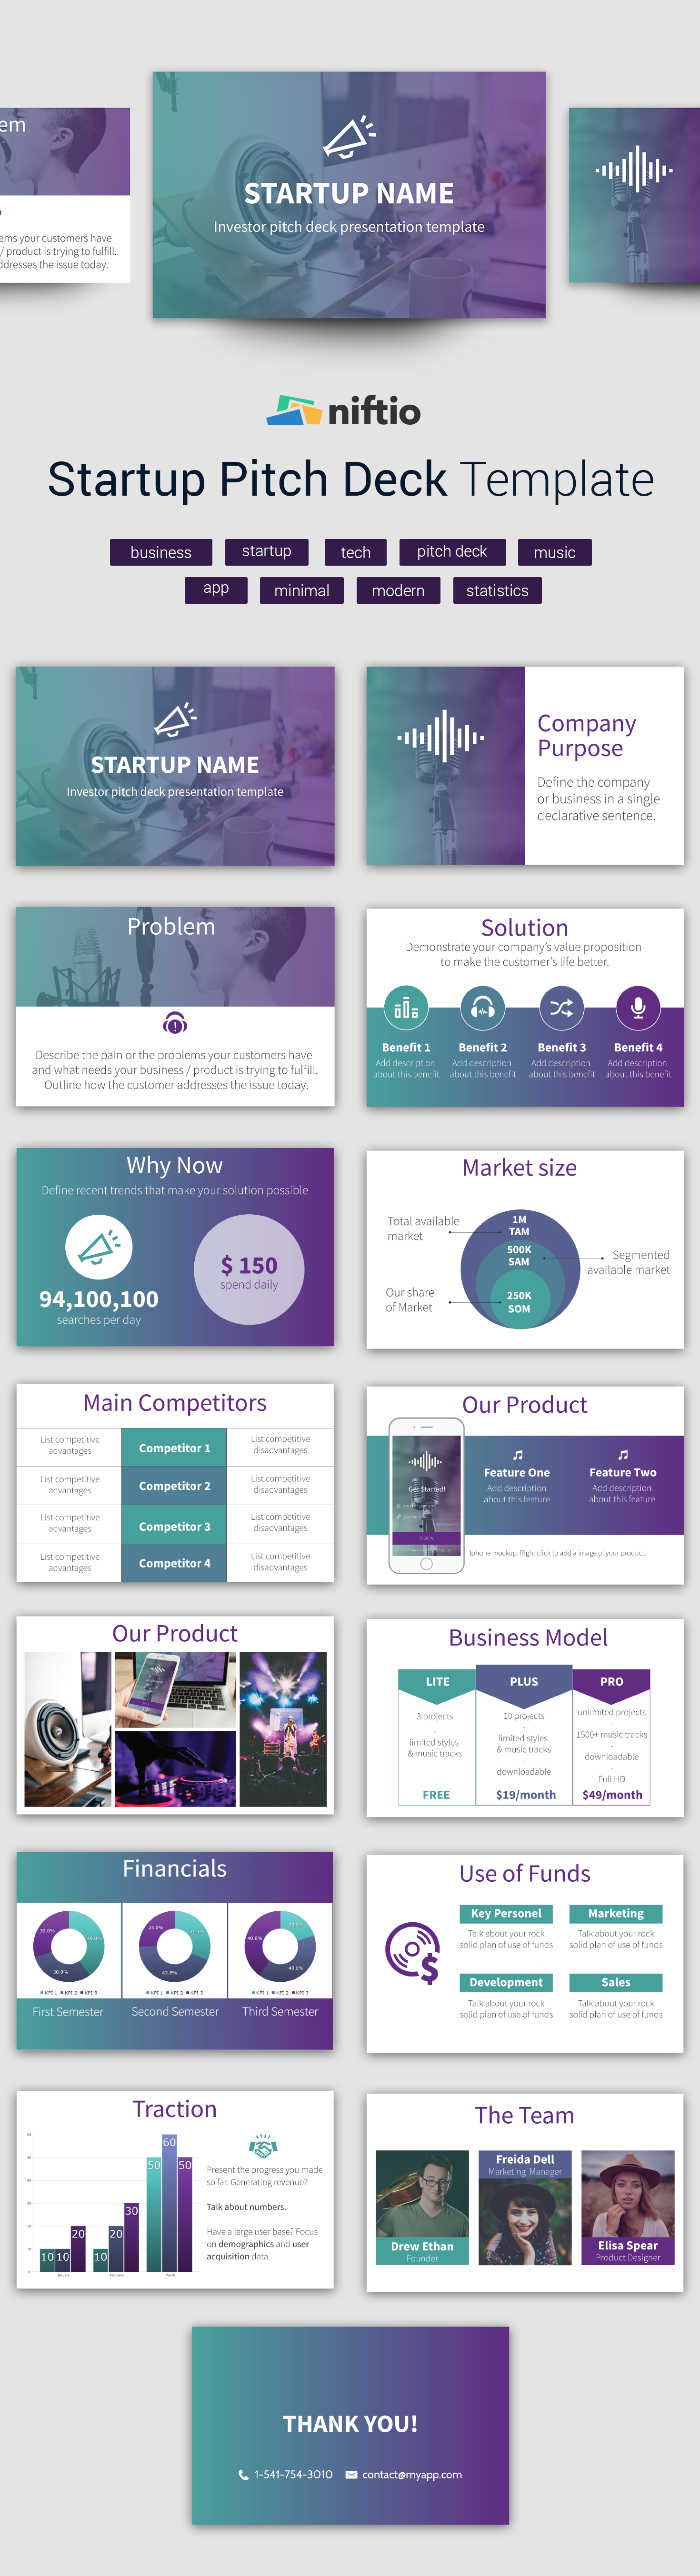 Designer Made Presentation Template Fit For Startups Or Product